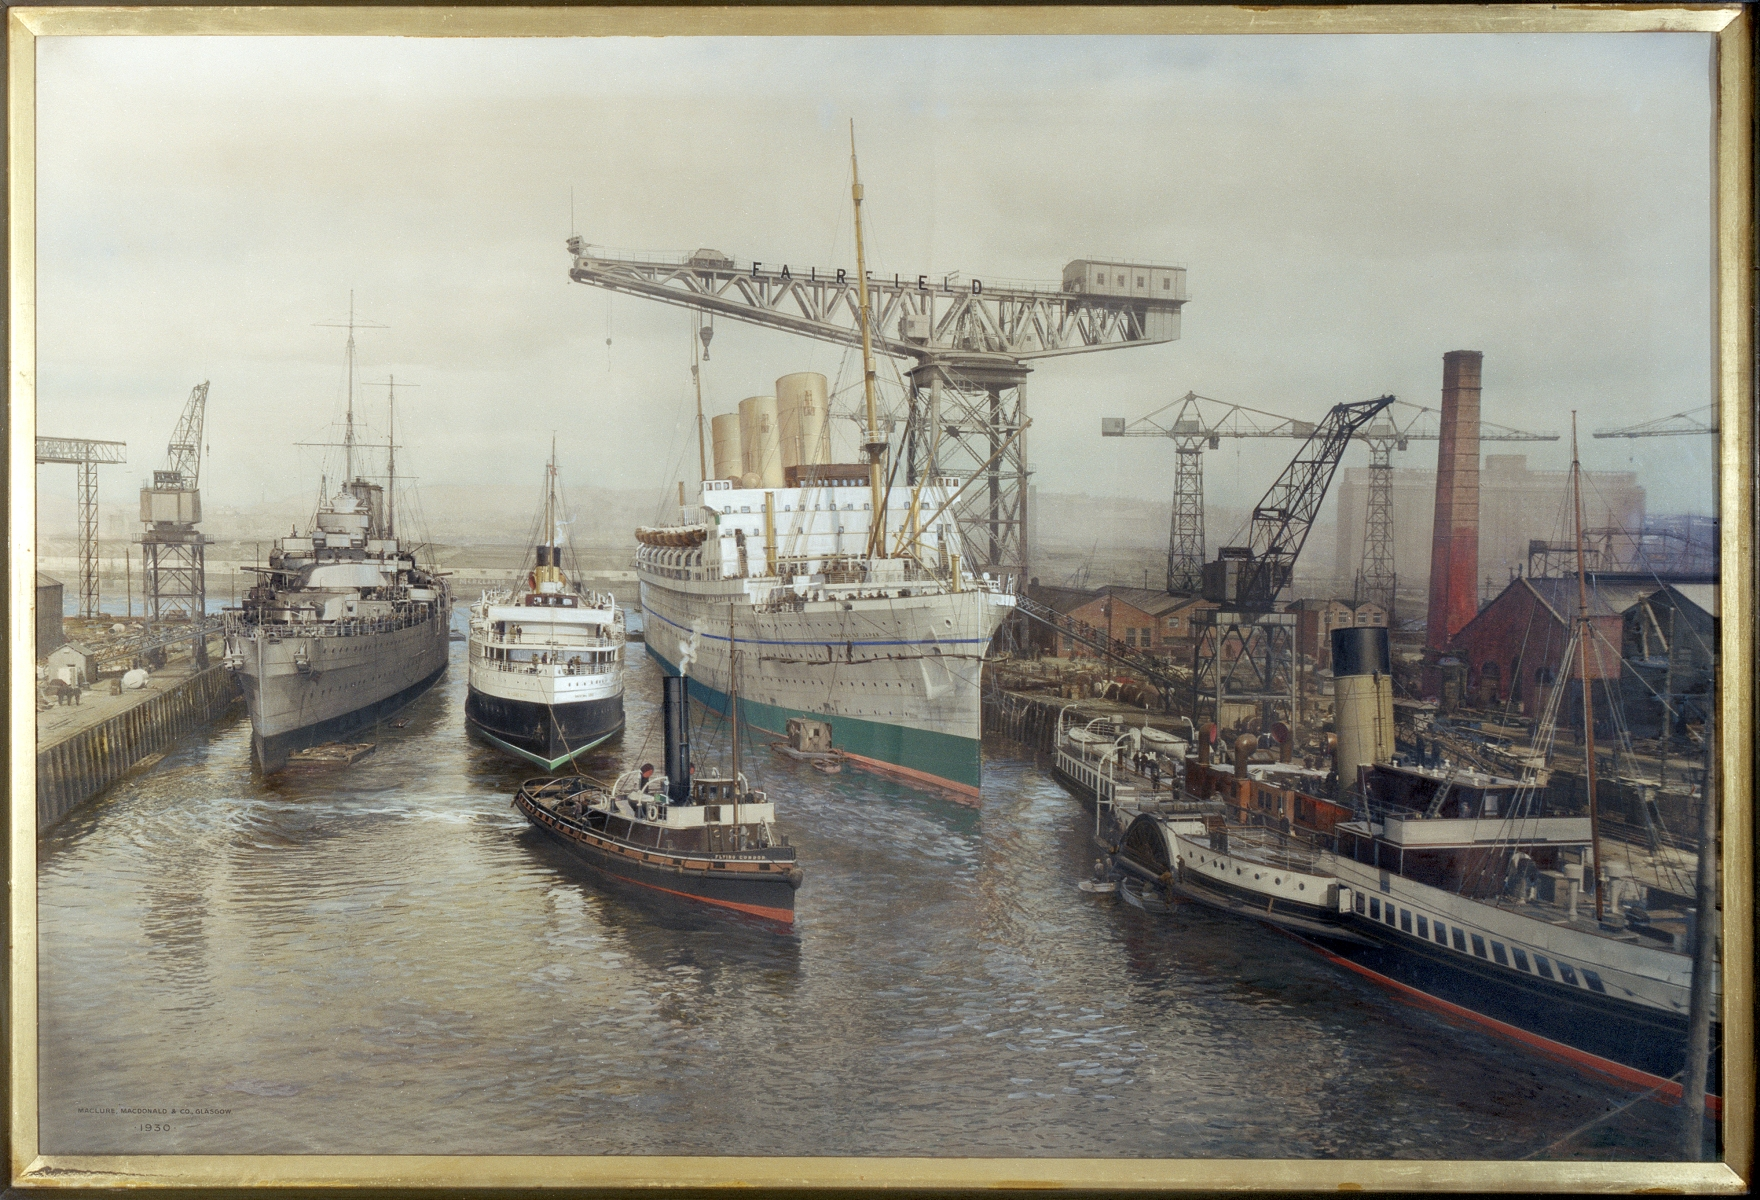 Glasgow, 1030-1048 Govan Road, Shipyard Offices. Photographic copy of painting of Fairfield's fitting-out basin. 1930